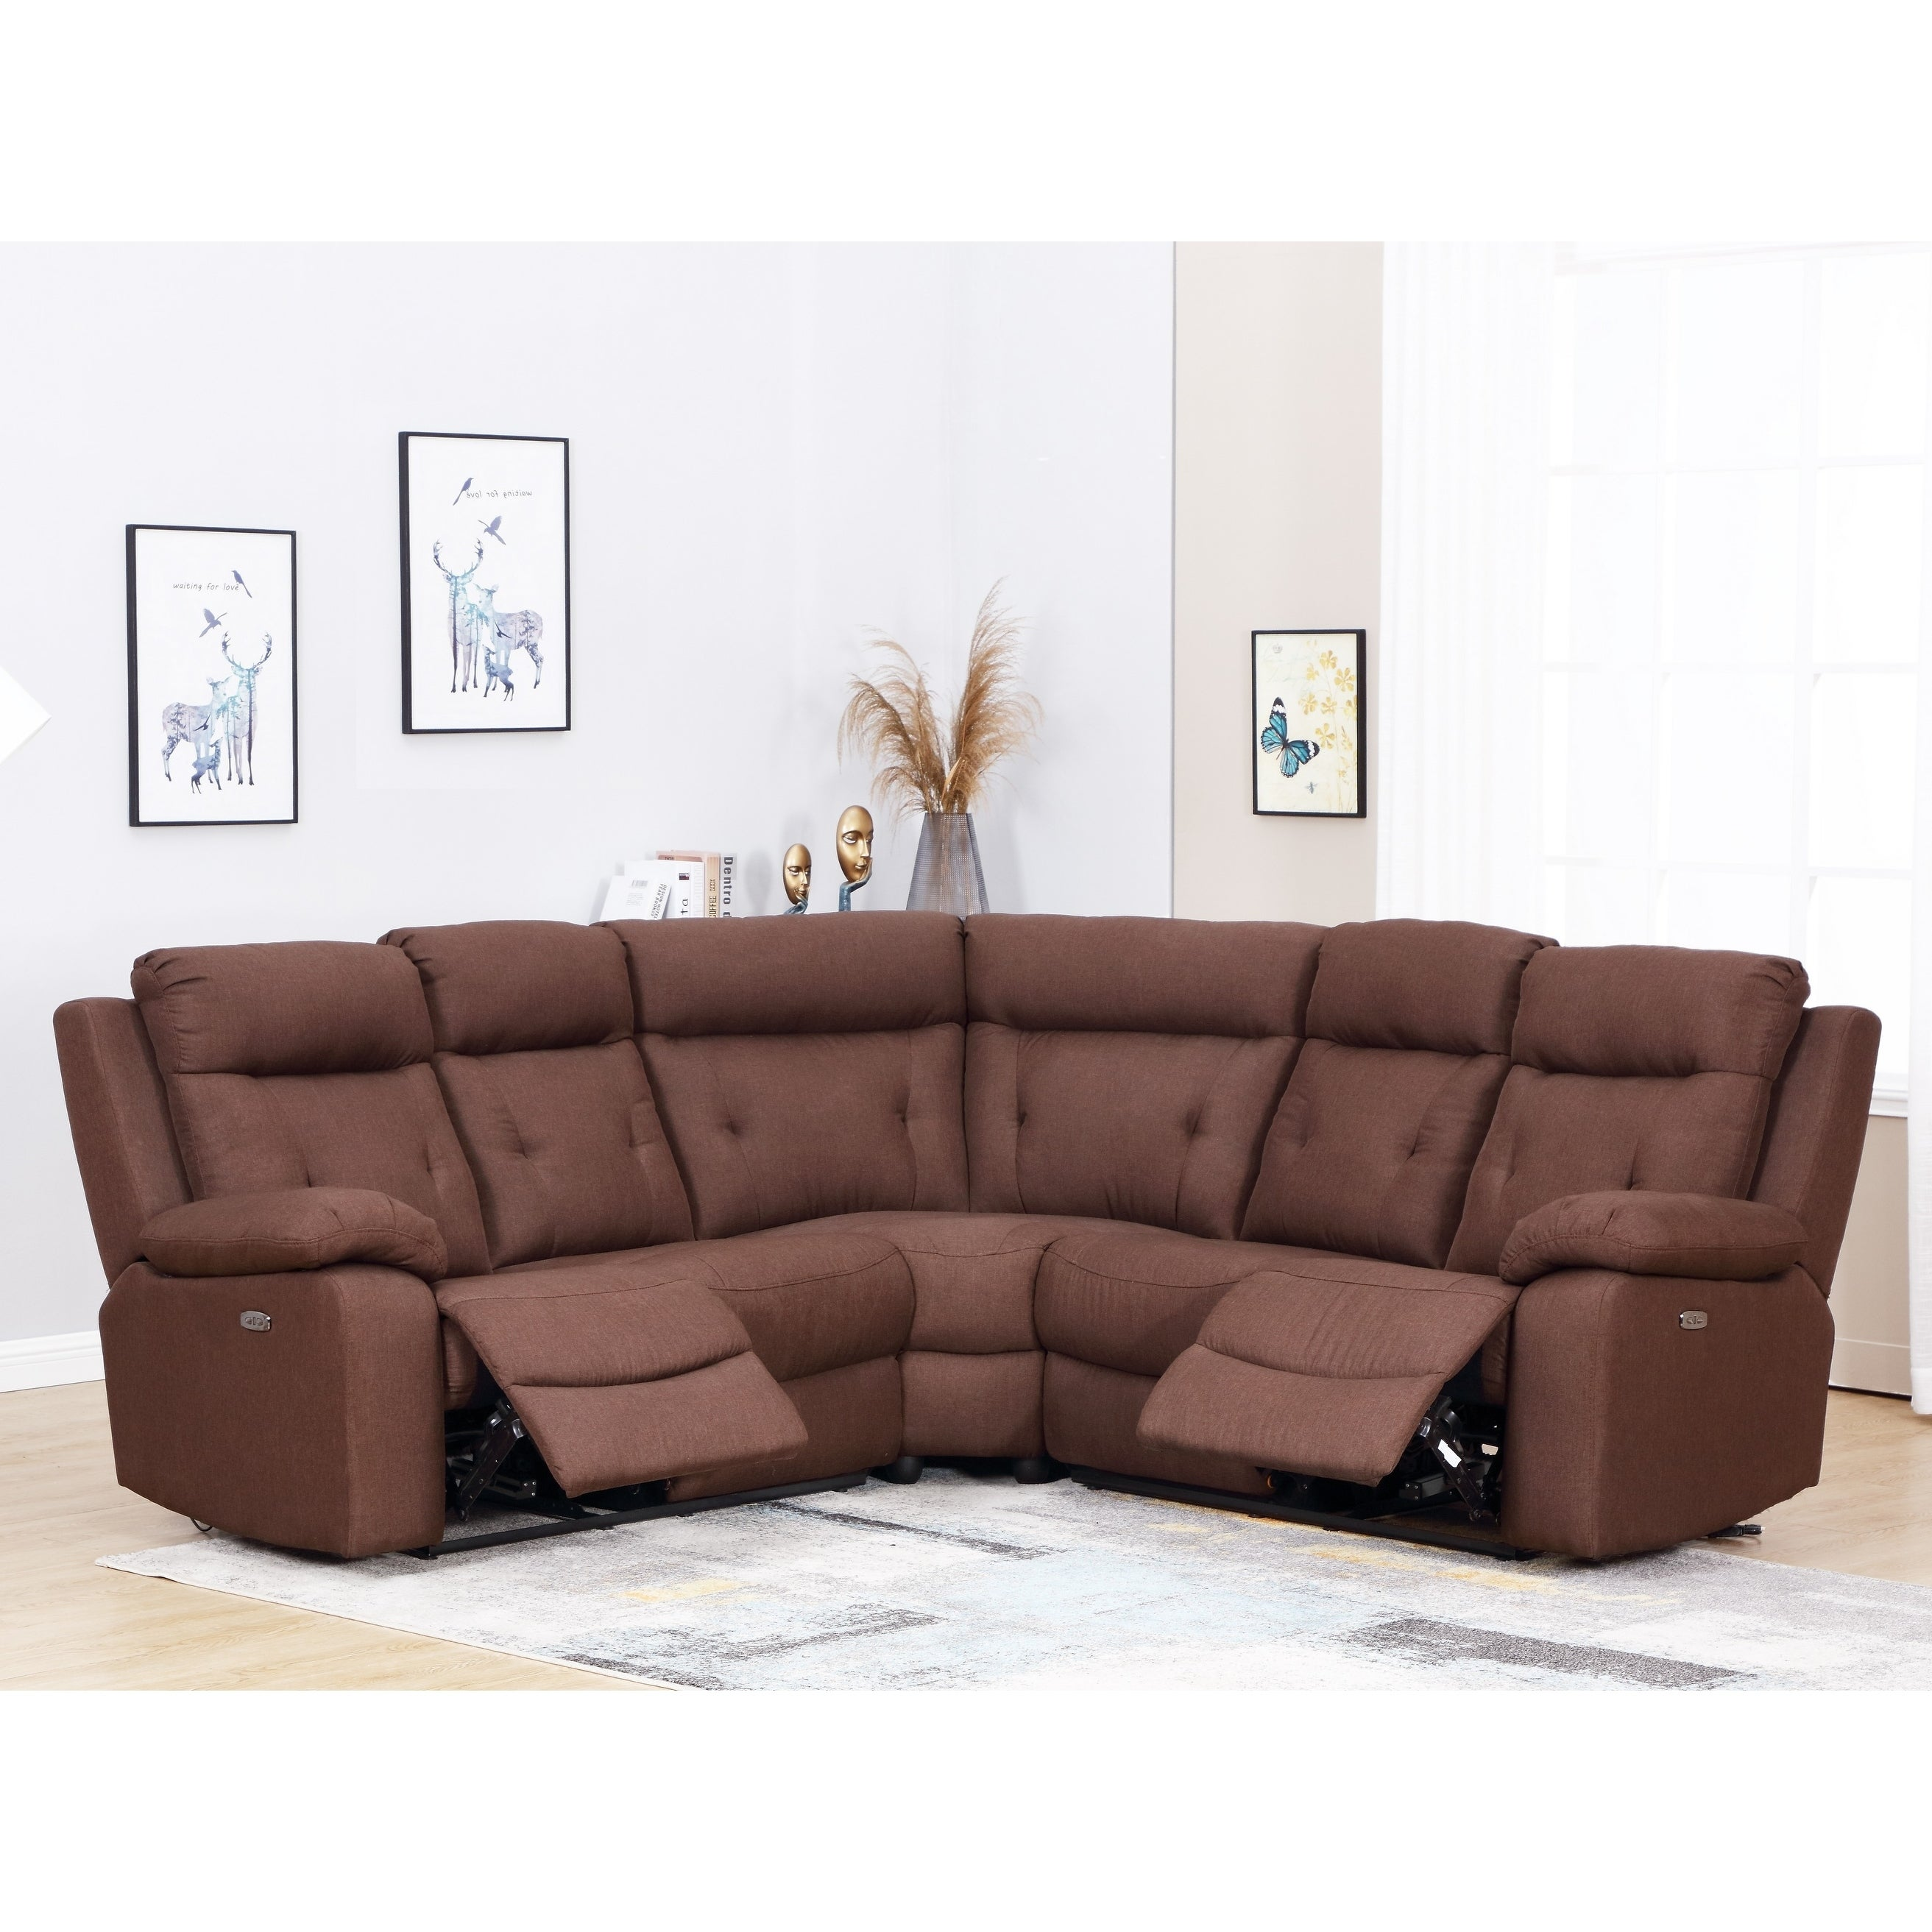 Brown Microfiber Upholstered Reclining Sectional